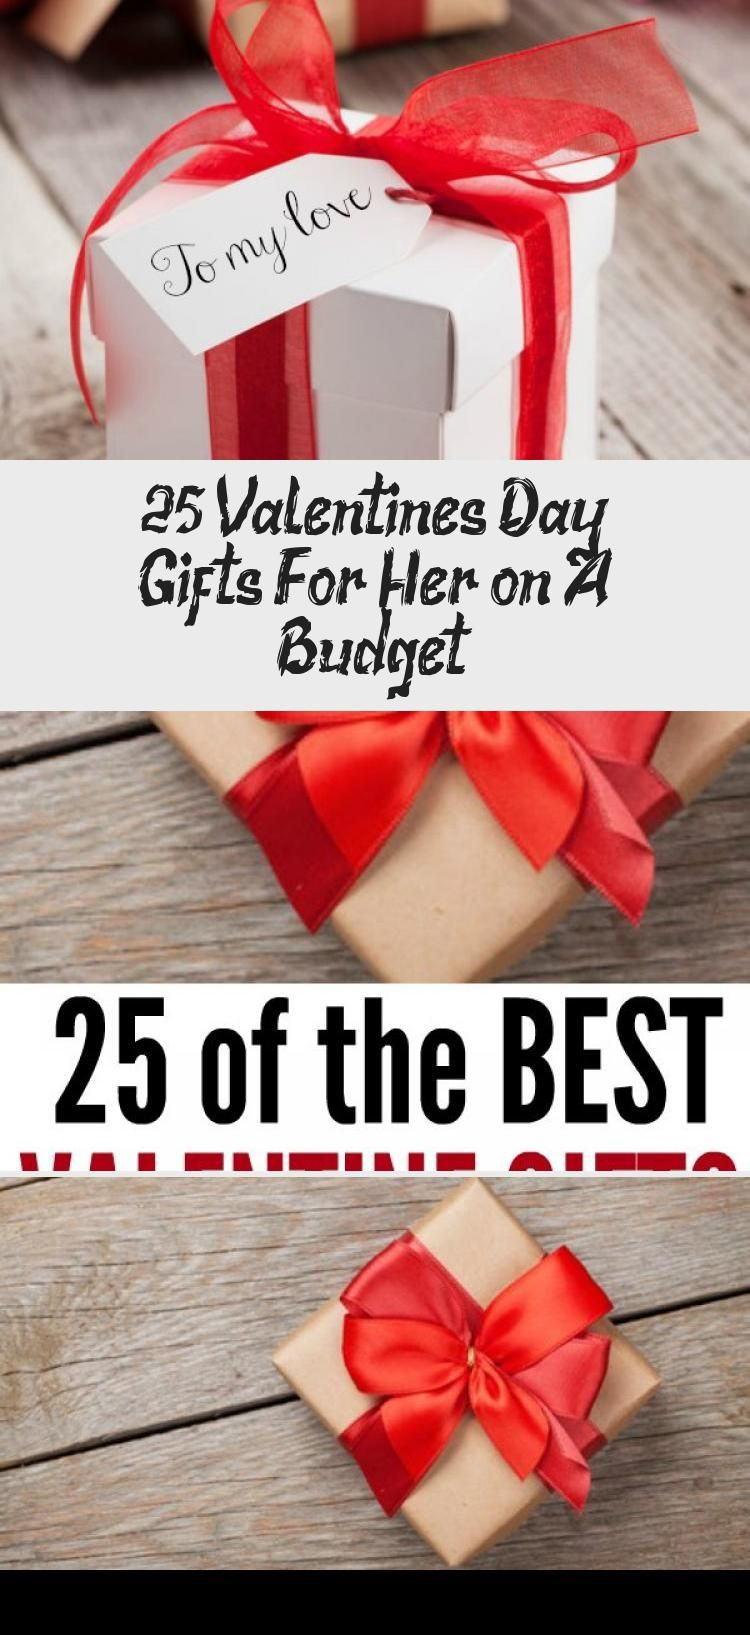 25 valentines day gifts for her on a budget in 2020